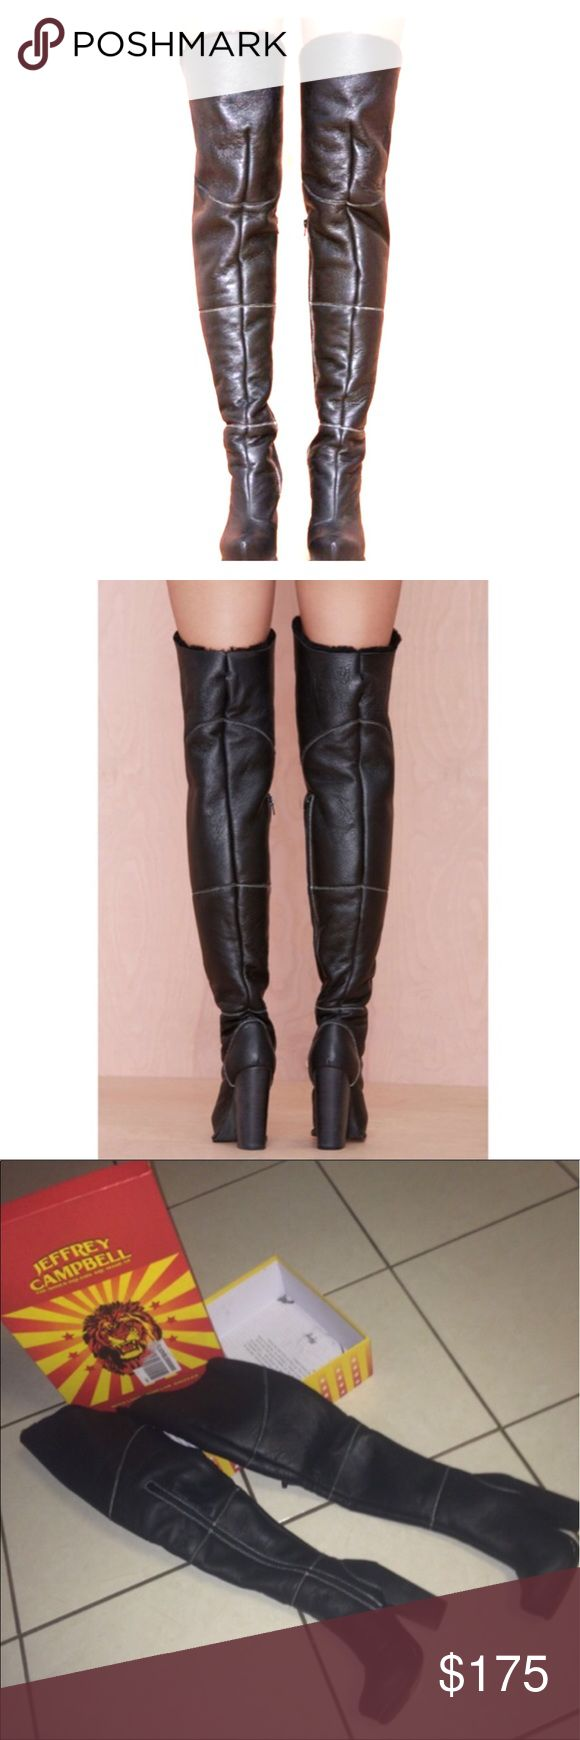 Jeffrey Campbell thigh high leather boots Jeffrey Campbell thigh high leather w/ cream stitching boots Jeffrey Campbell Shoes Over the Knee Boots